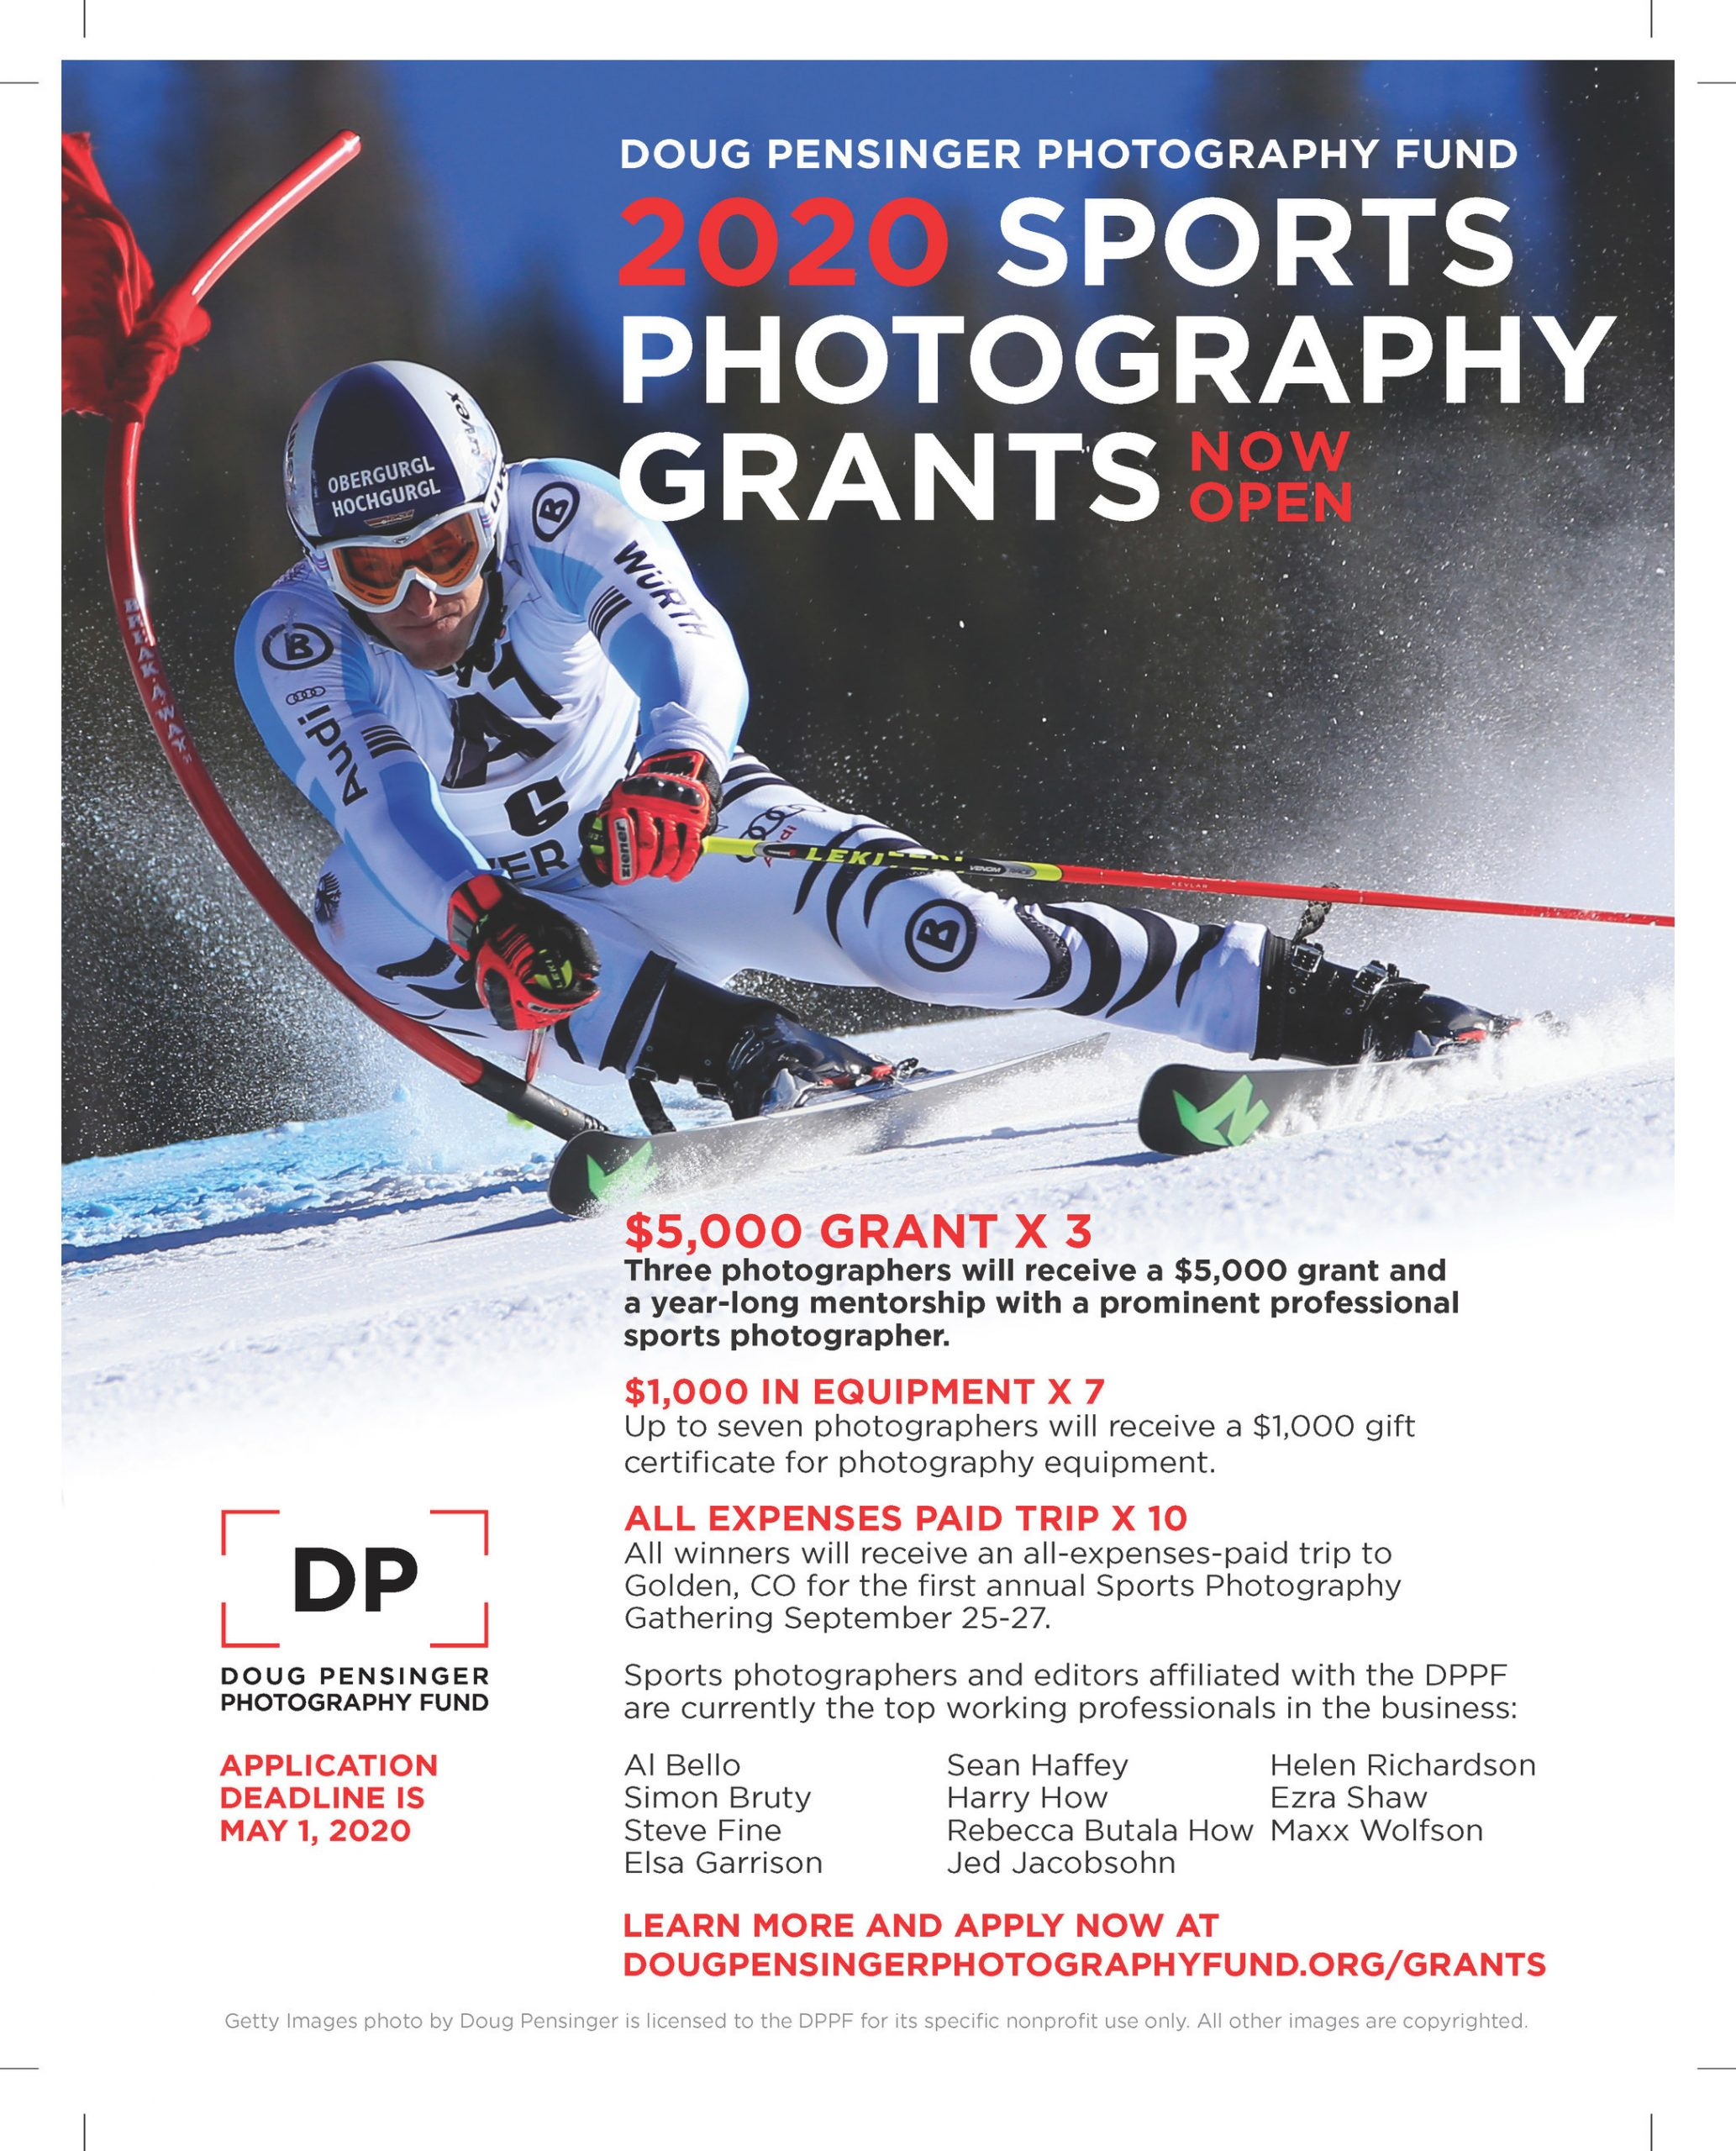 DPPF 2020 Sports Photography Grants & Mentorships